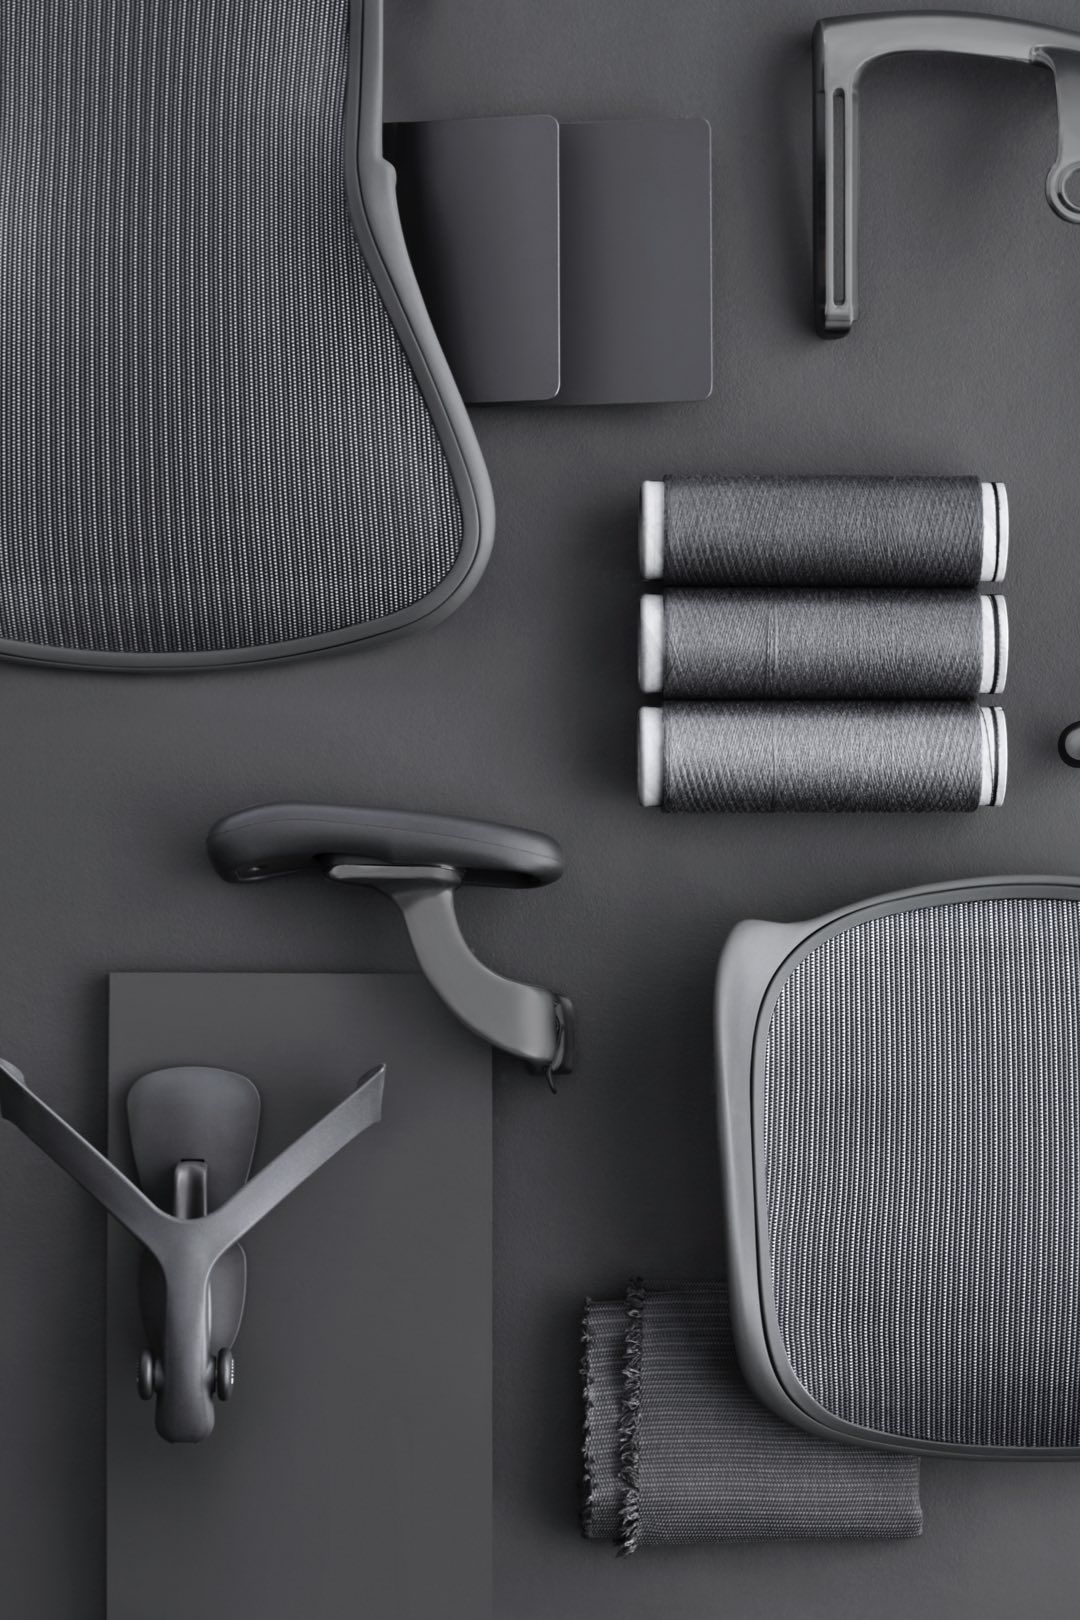 Individual parts of the new Aeron chair including PostureFit SL